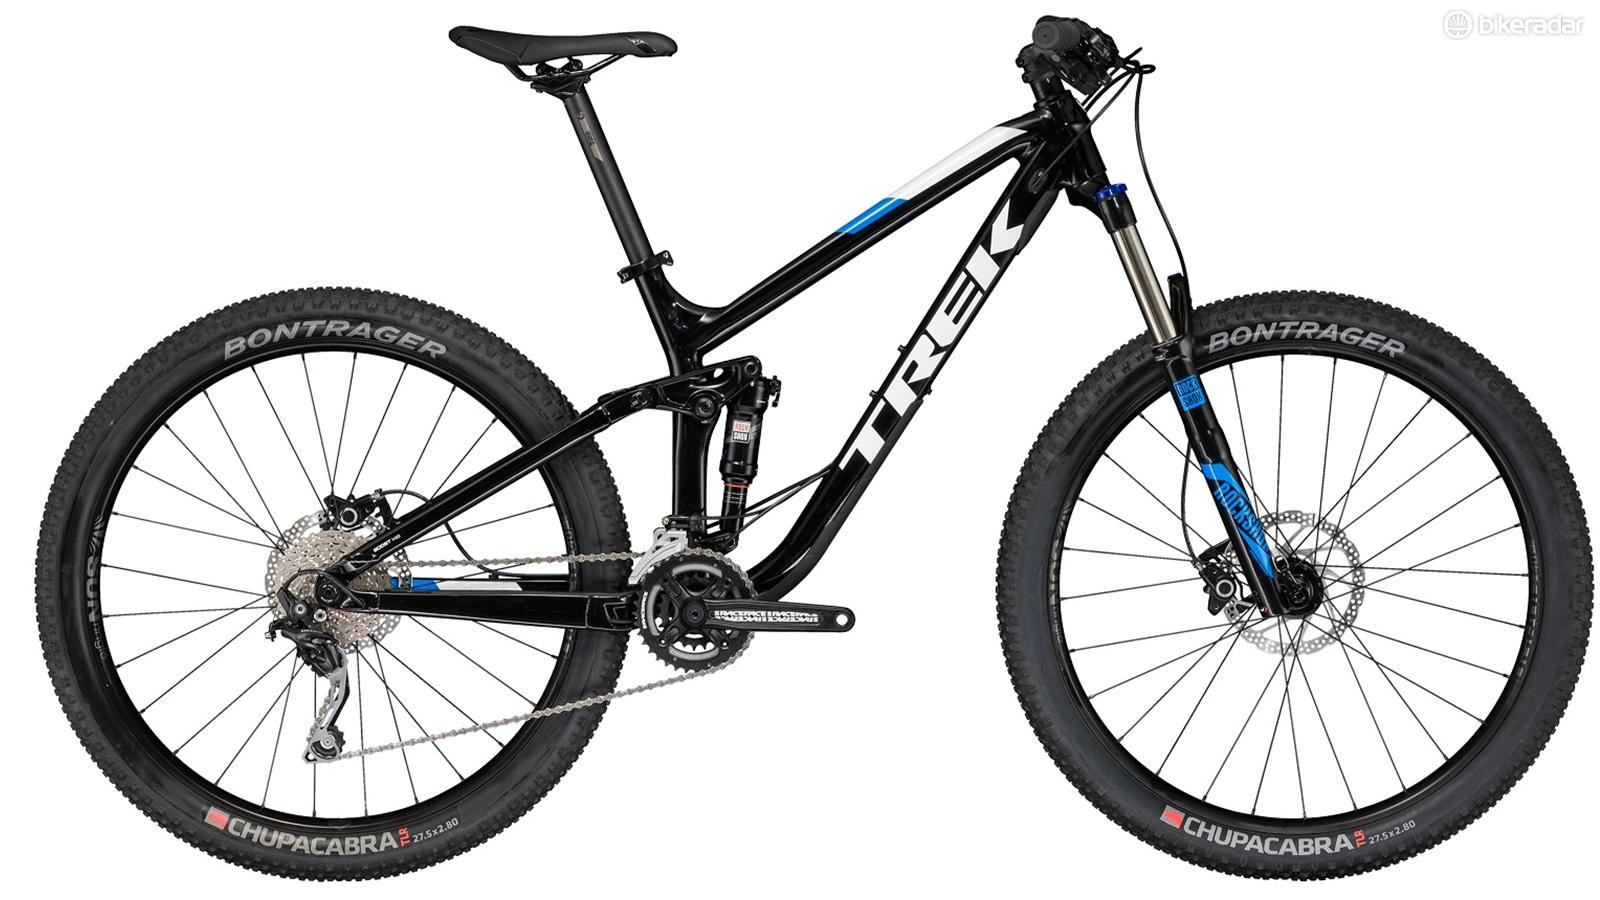 The Trek Fuel EX 5 27.5 Plus